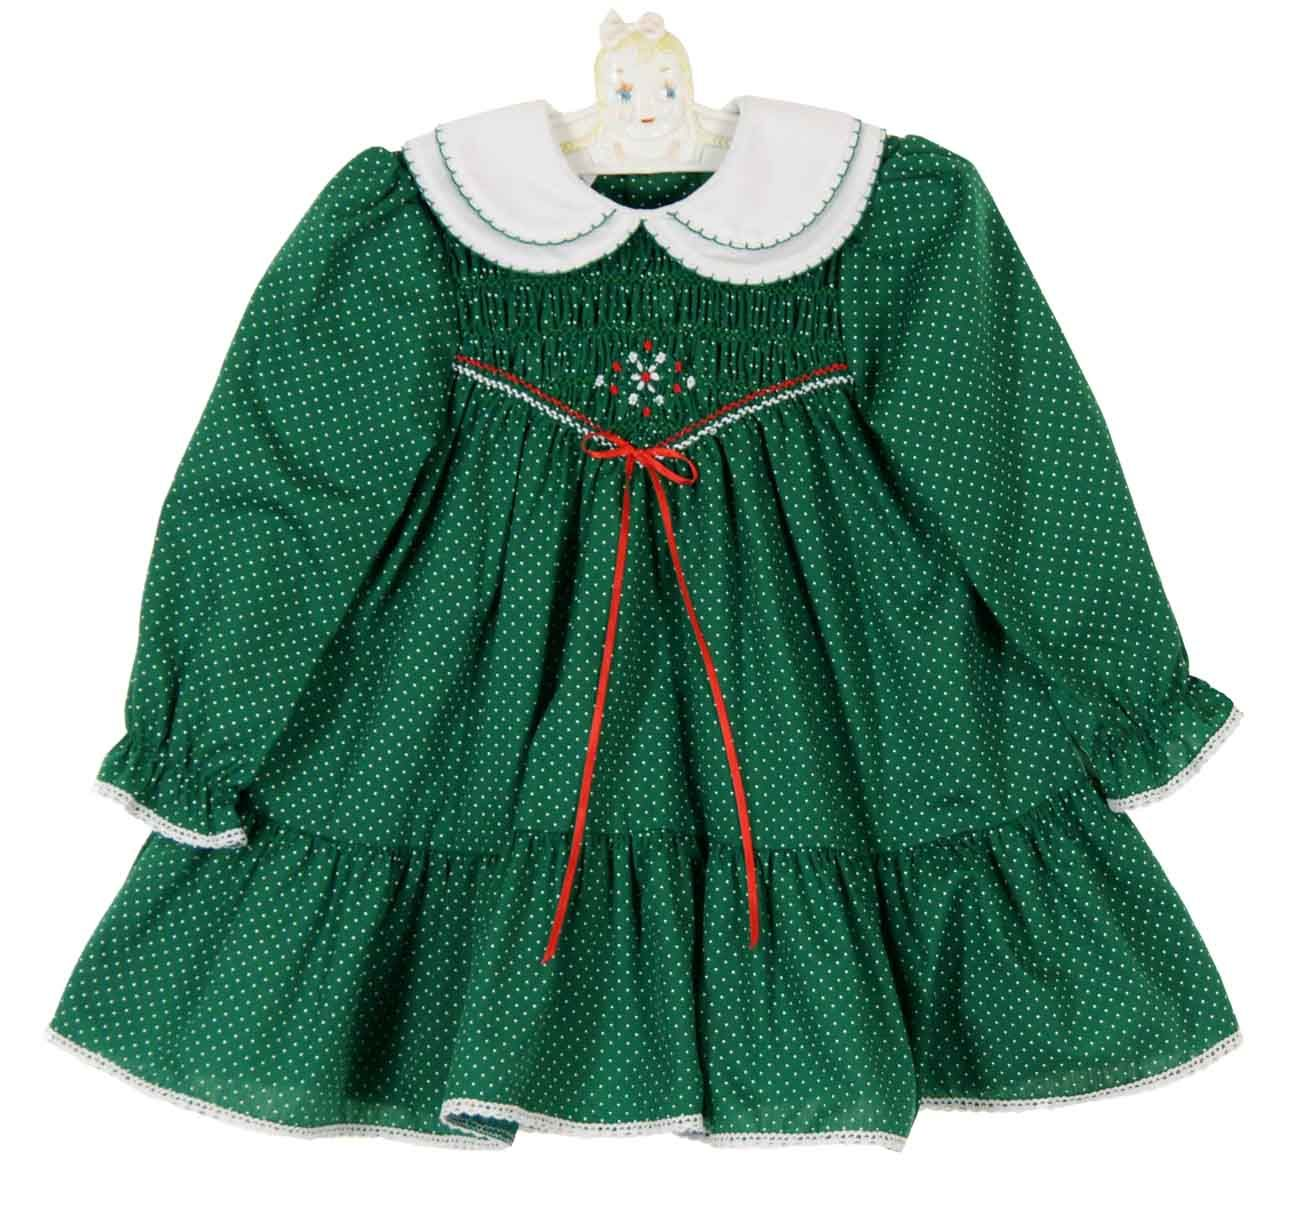 d1dcc59aec3c NEW Polly Flinders Green Dotted Smocked Dress with Double White Collar  $75.00 #PollyFlindersSmockedDresses #PollyFlindersChristmasDress